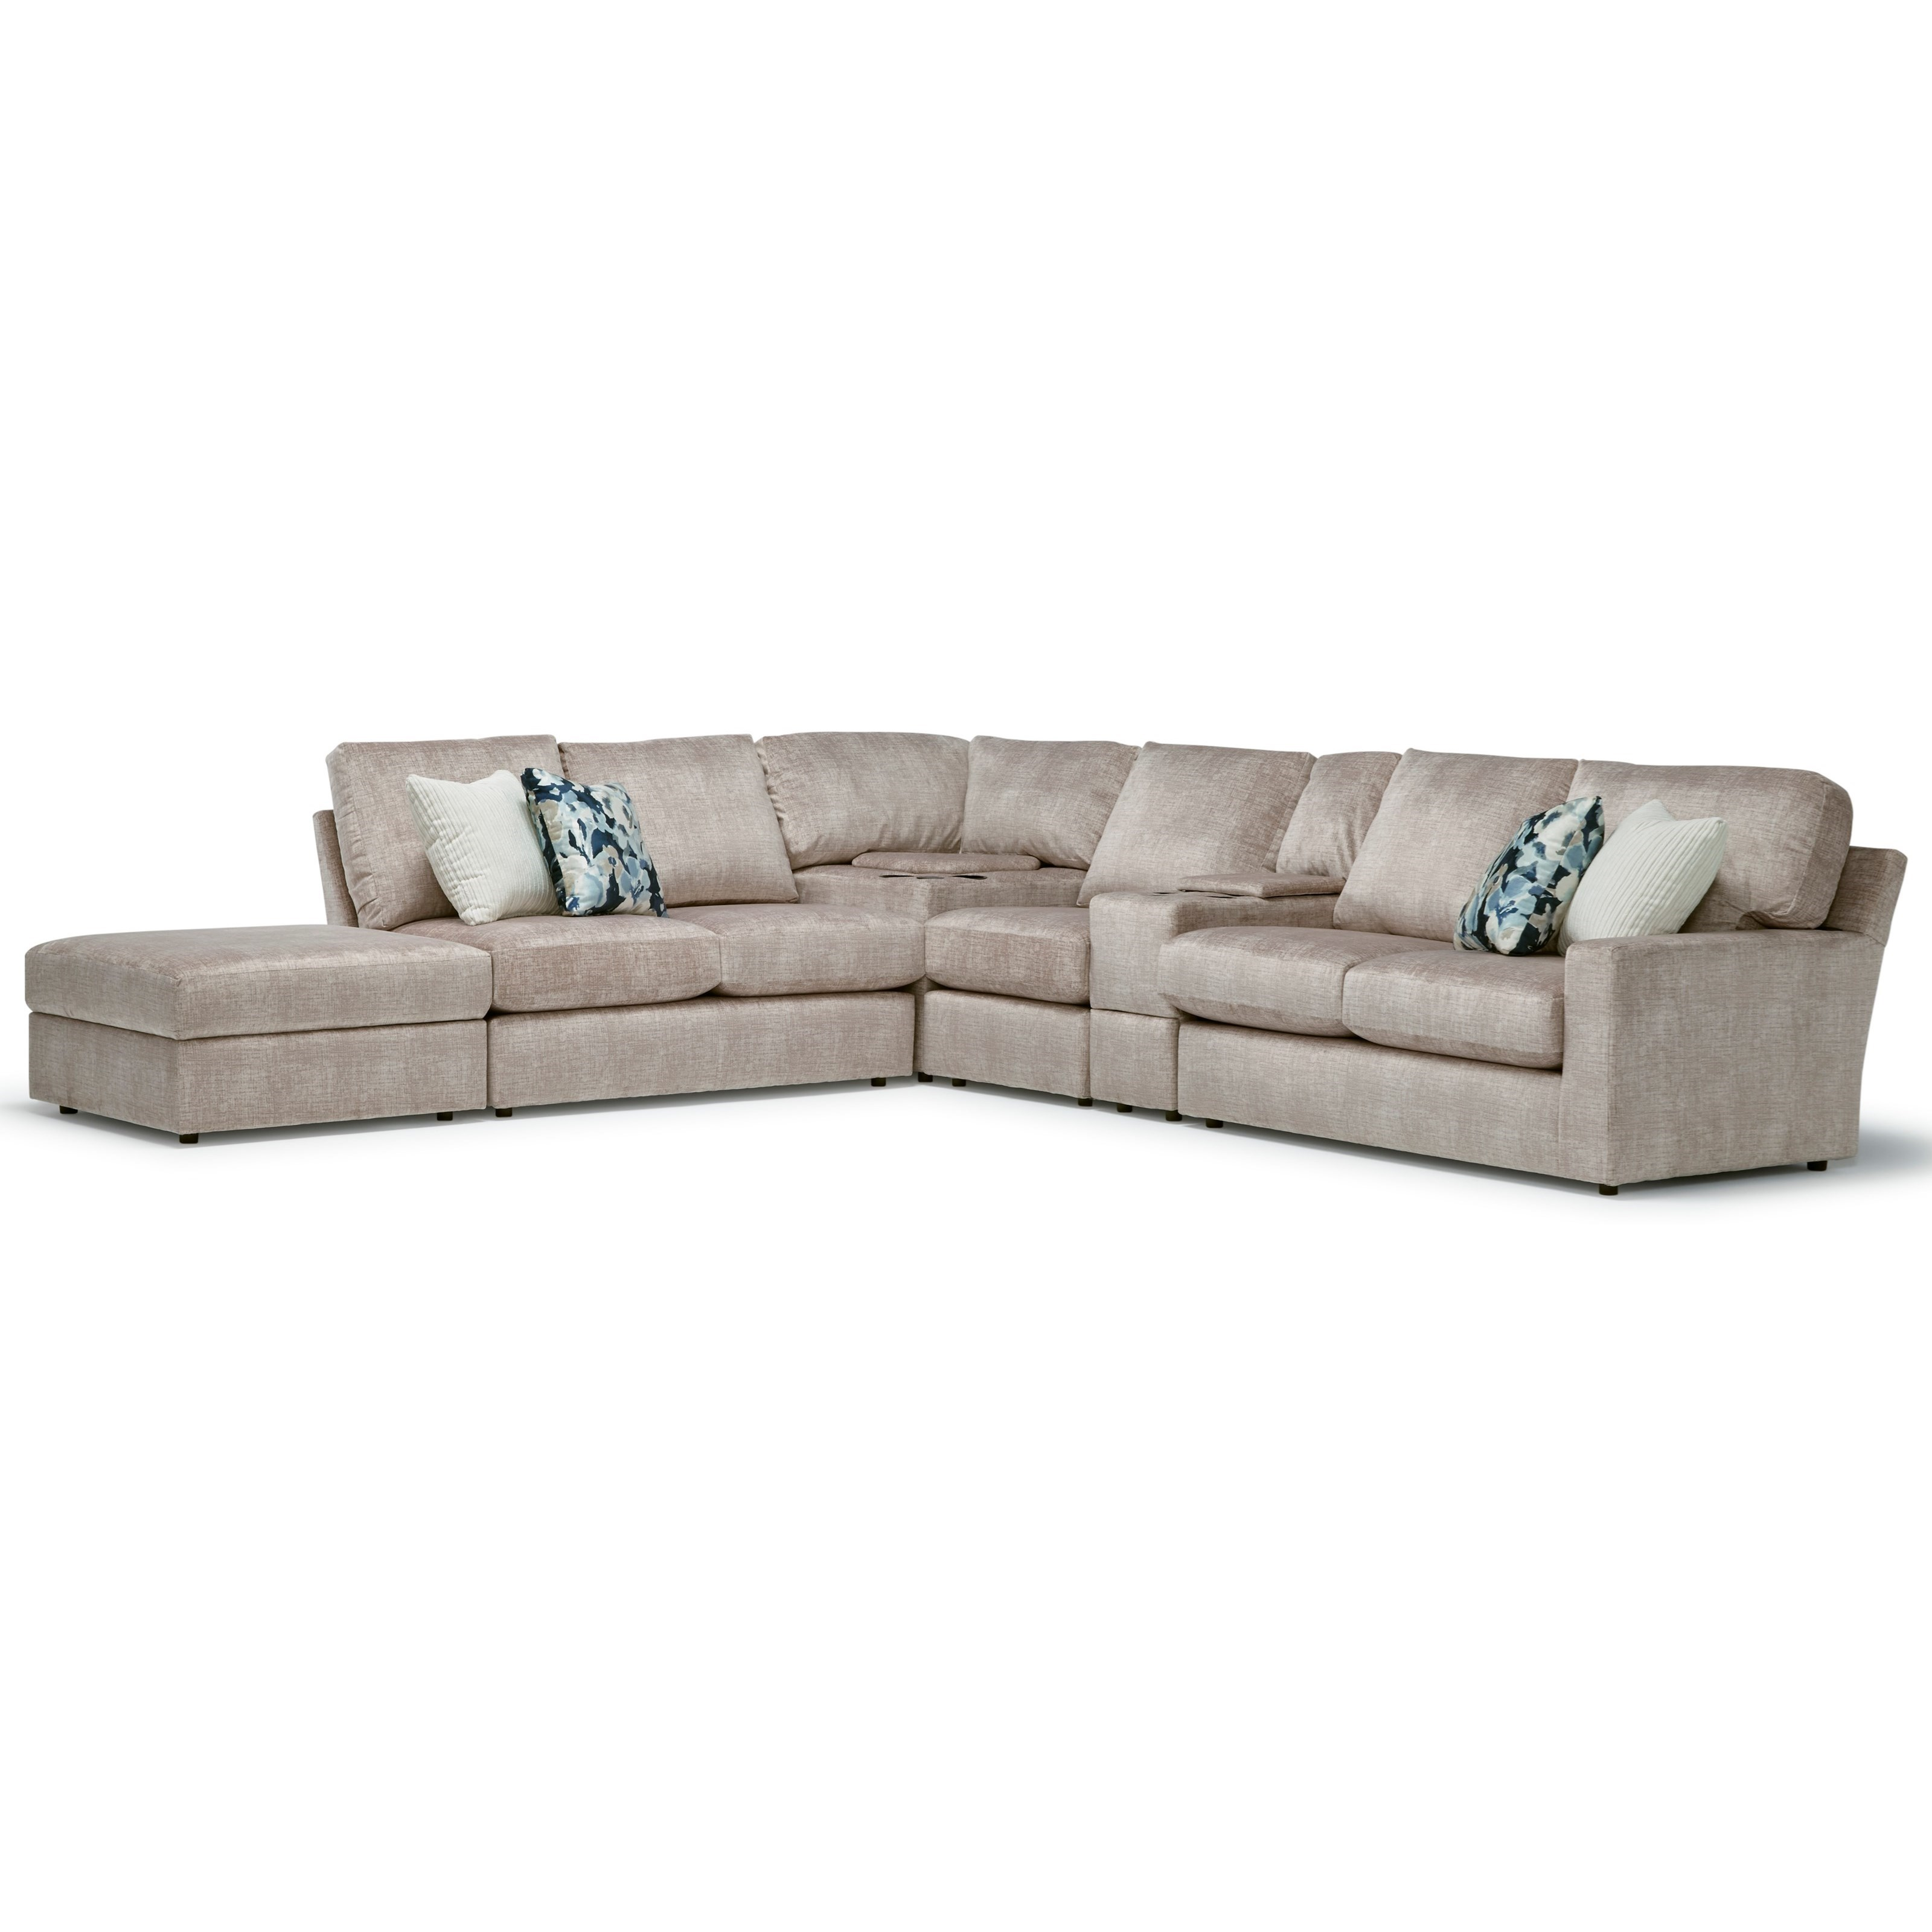 Dovely 5-Seat Sofa w/ Wireless Charge & LAF Ottoman by Best Home Furnishings at Furniture Barn